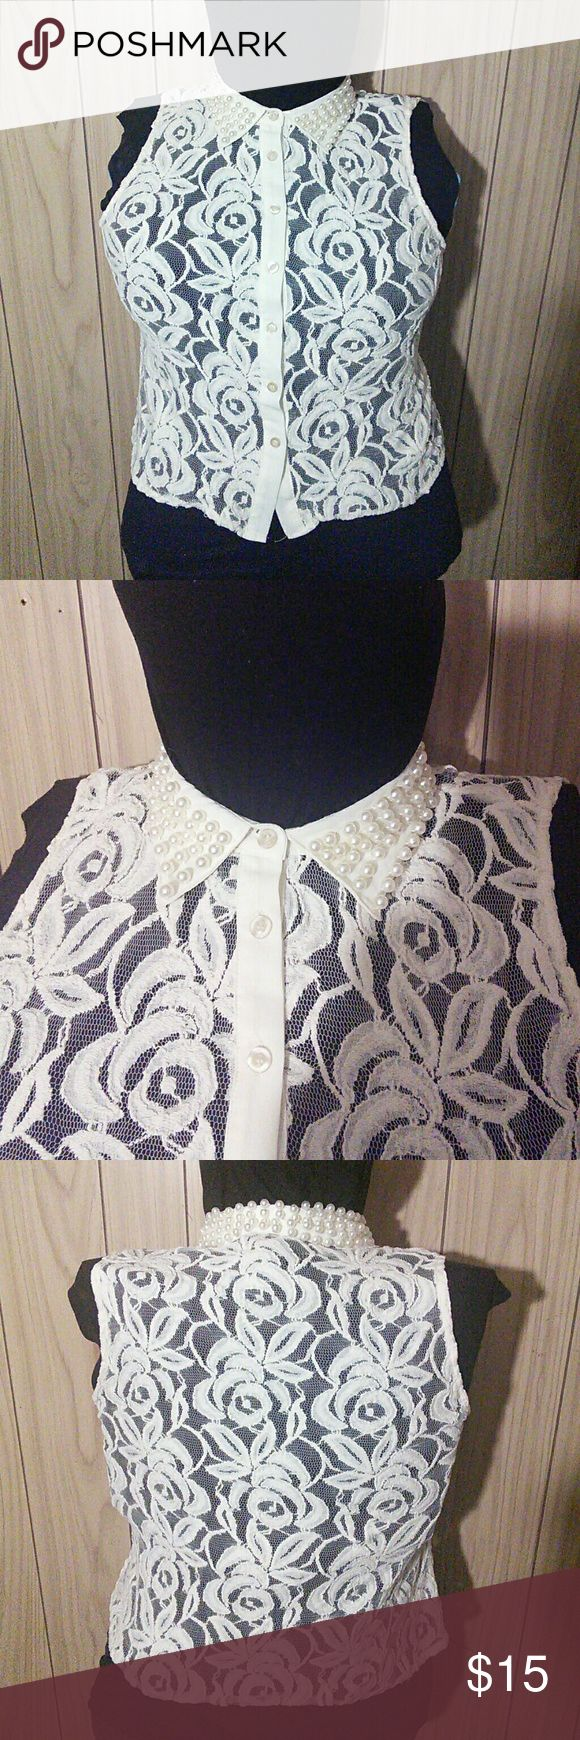 Body Central sleeveless lace top with pearl collar Body Central sleeveless lace top with pearl collar Body Central Tops Blouses